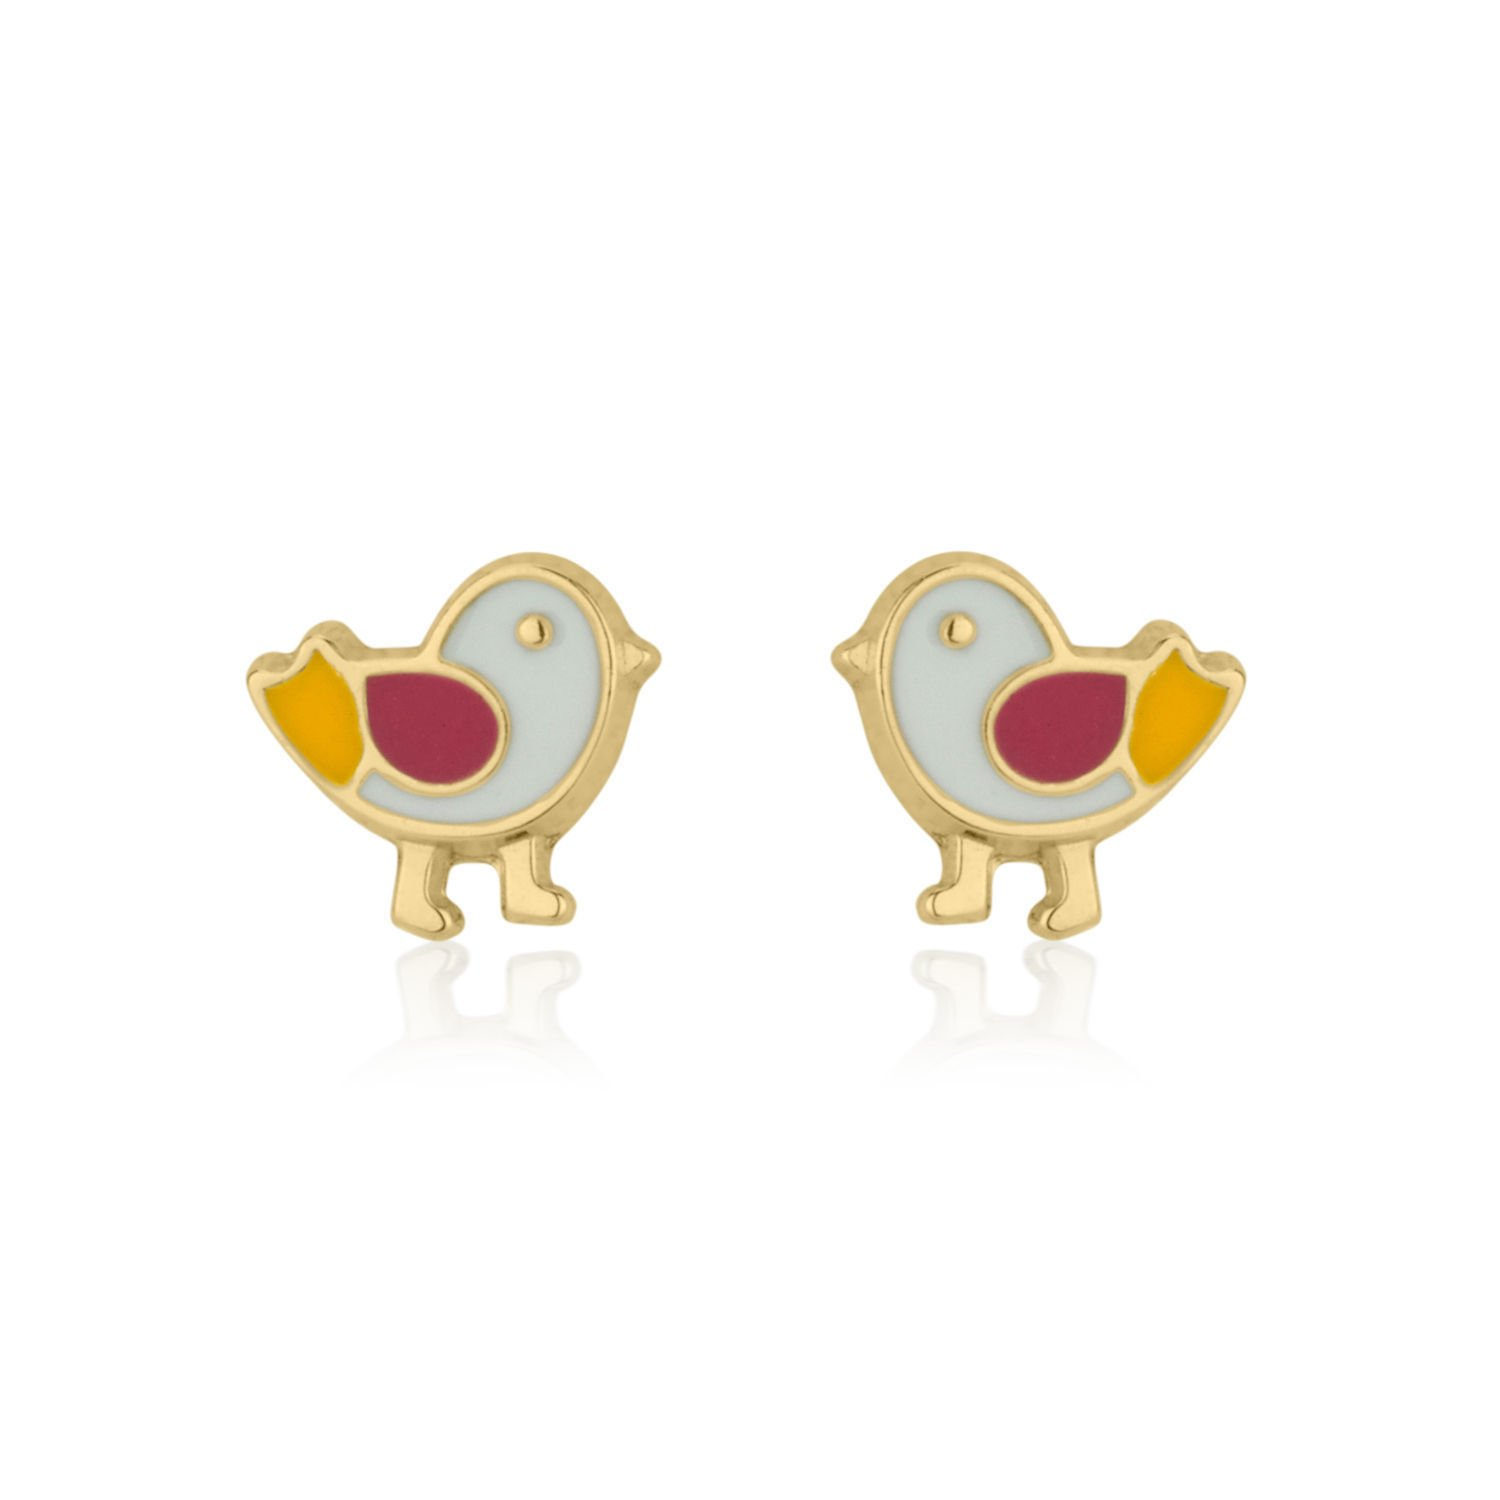 14K Fine Yellow Gold Enamel Chick Screw Back Stud Earrings for Baby Girls Kids Children Gift by youme Gold Jewelry (Image #1)